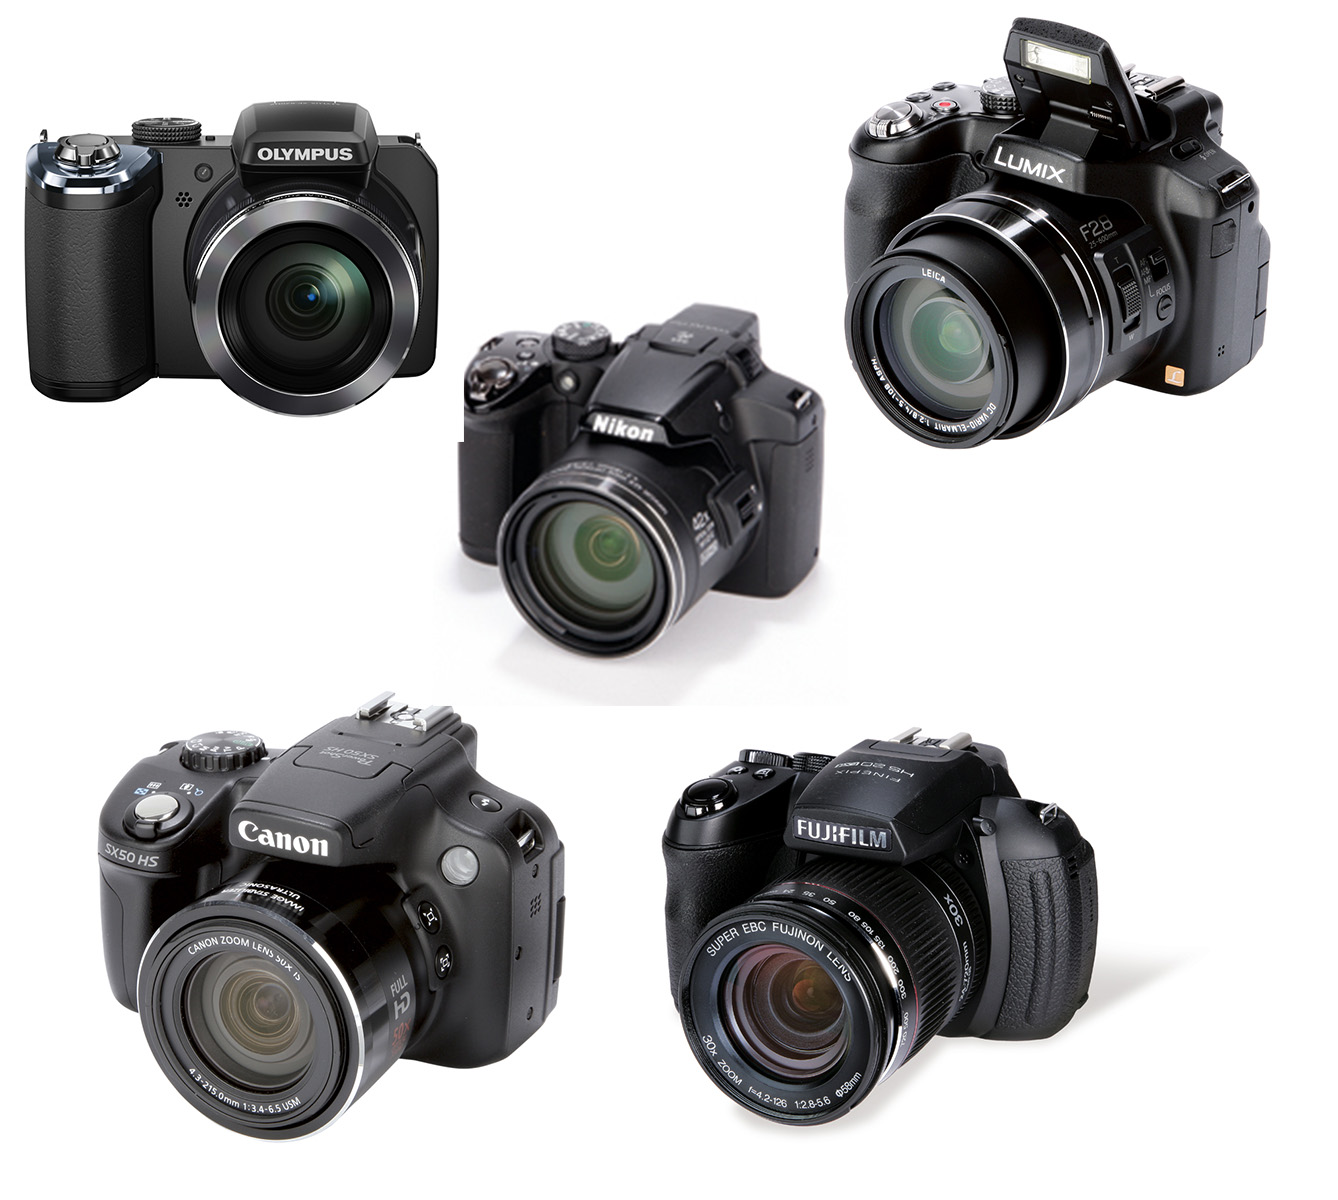 best bridge cameras of 2013 to discover which bridge camera you should